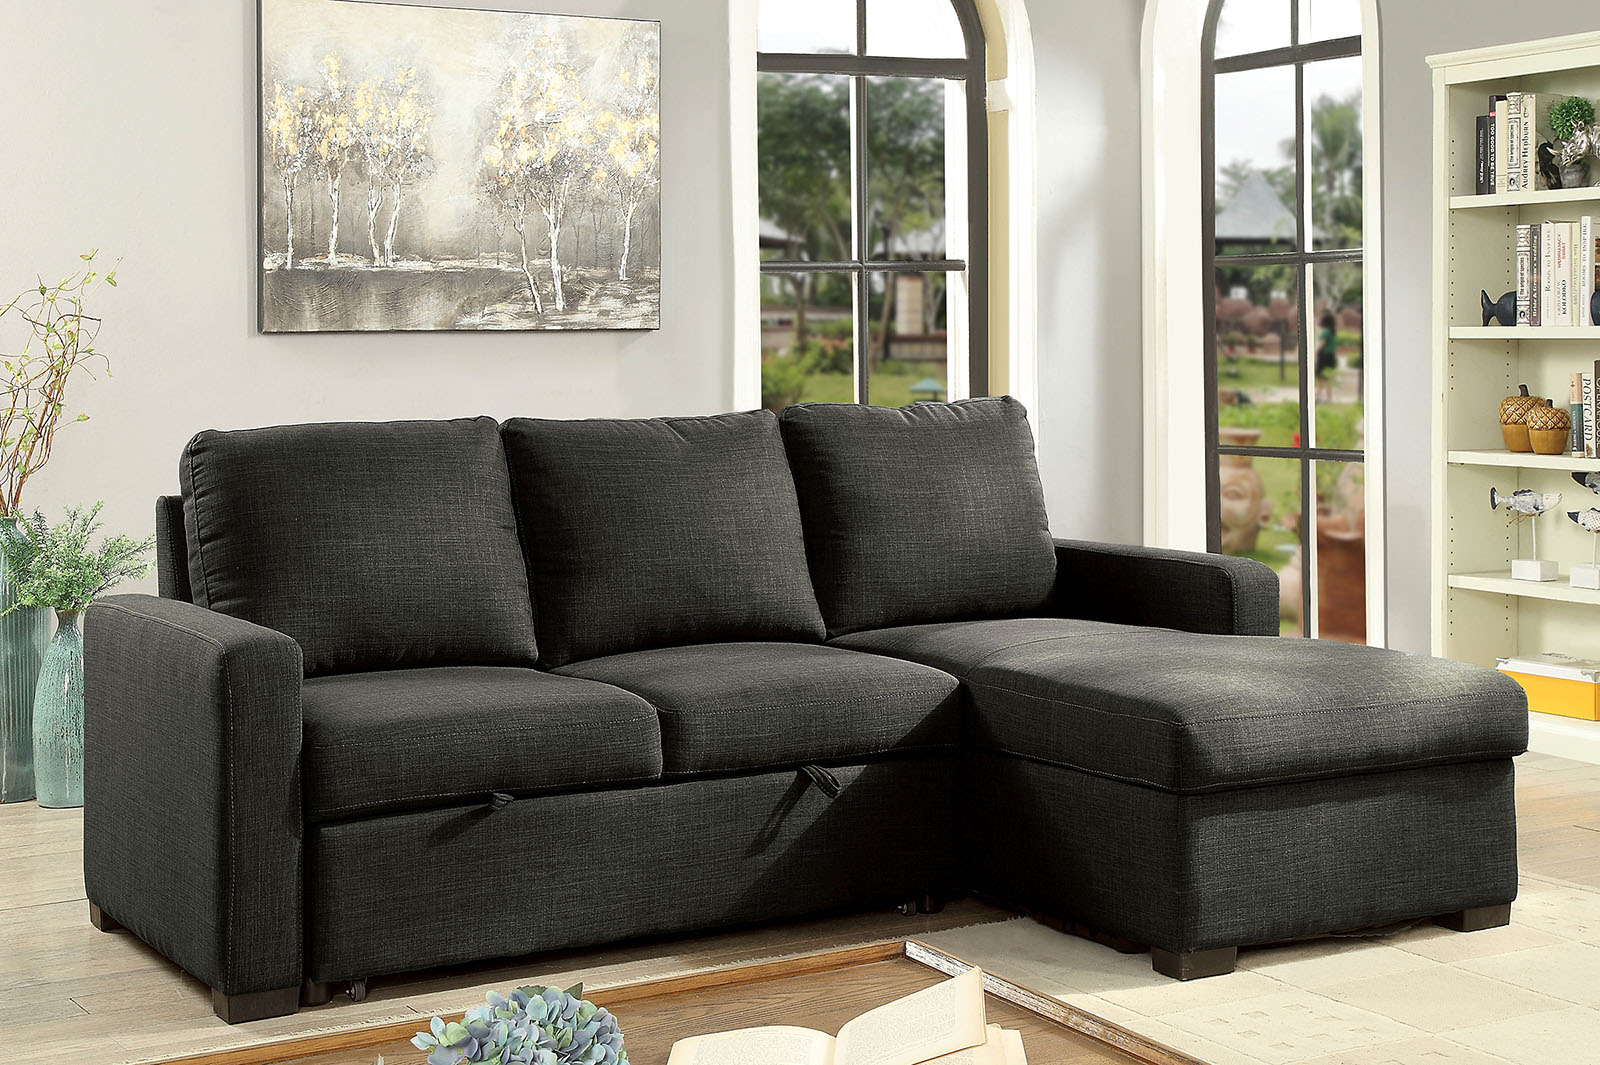 Arabella Dark Gray Transitional Espresso Sectional